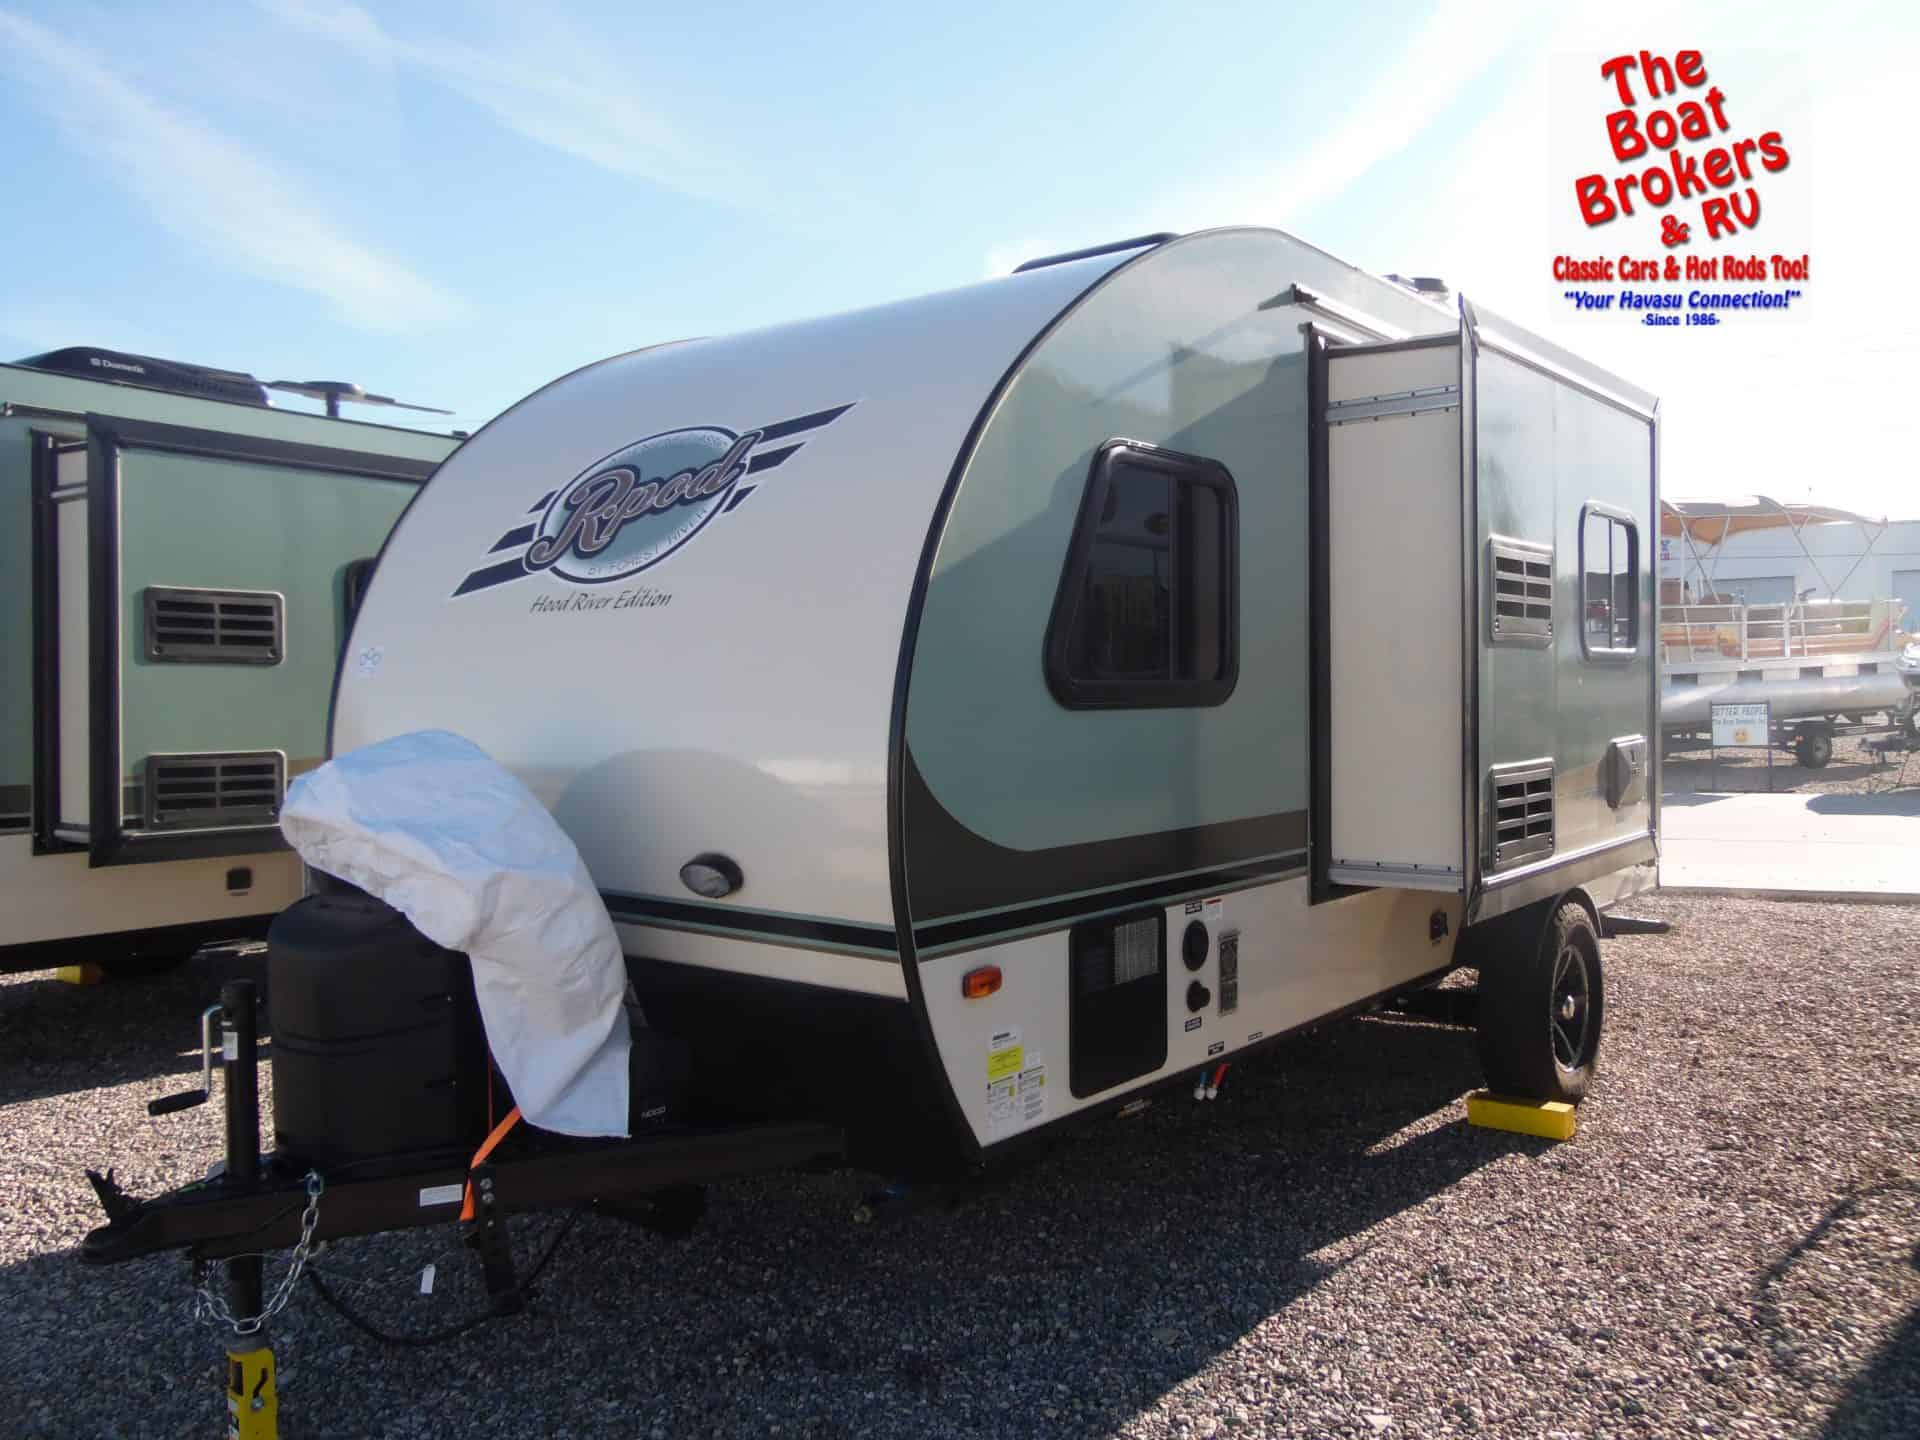 2017 Forest River R-Pod 18ft - The Boat Brokers & RV ...